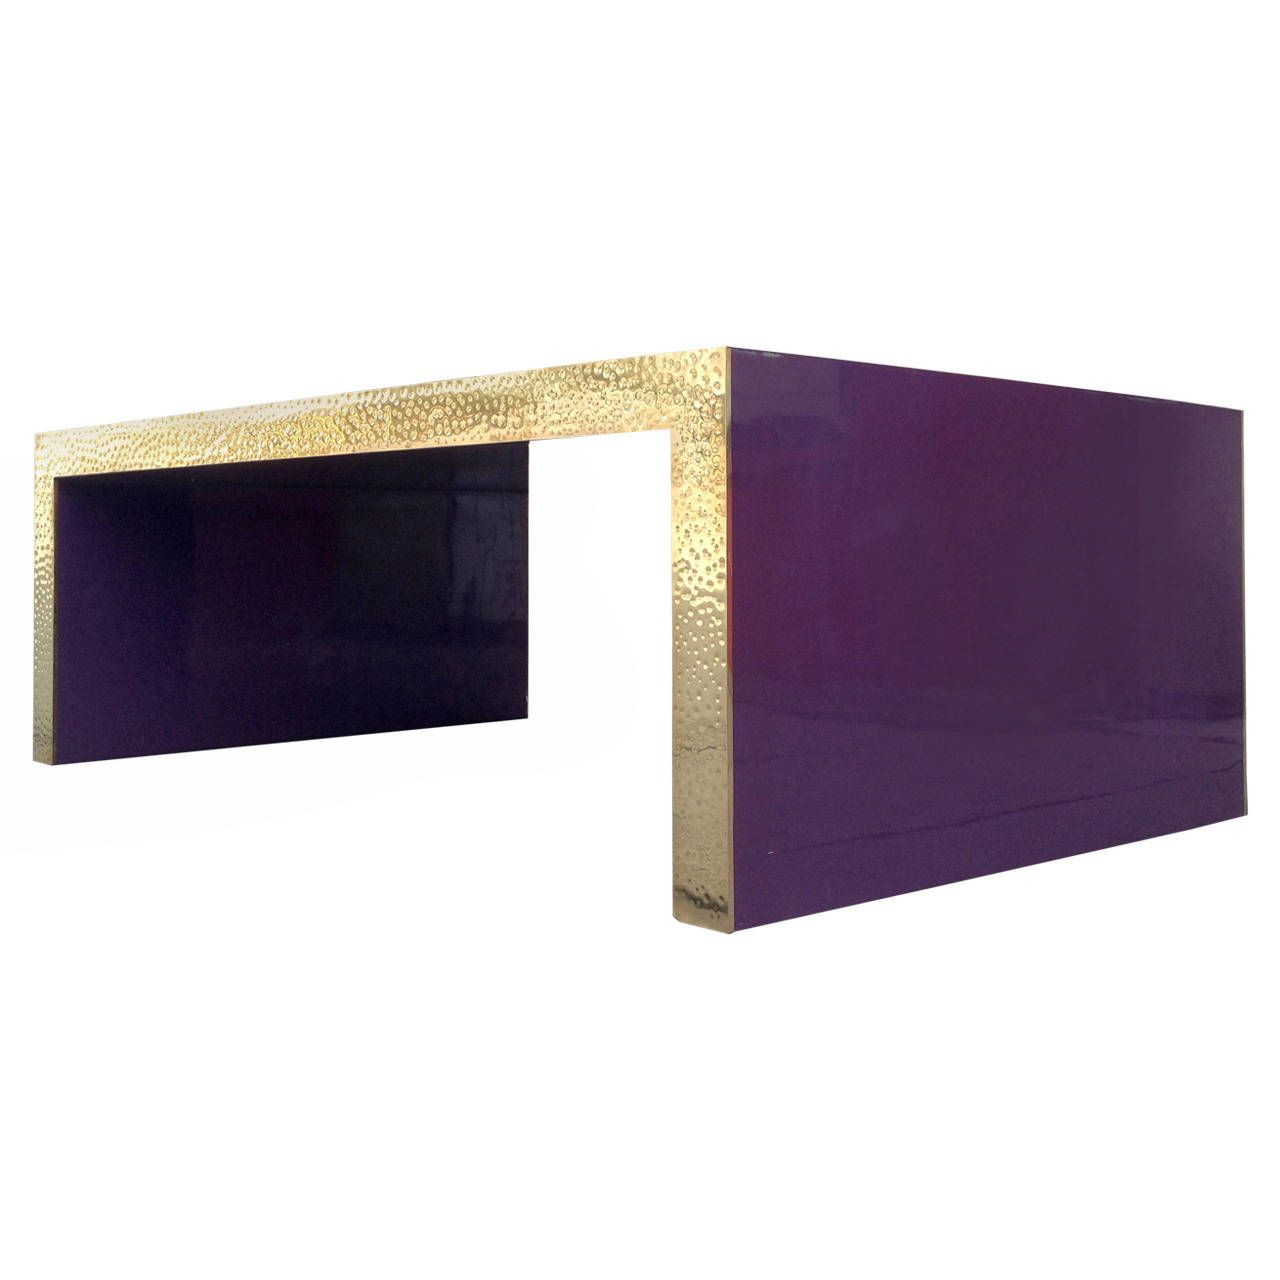 Glamorous Purple Lacquered Coffee Table with Hammered Brass Edge | From a unique collection of antique and modern coffee and cocktail tables at https://www.1stdibs.com/furniture/tables/coffee-tables-cocktail-tables/